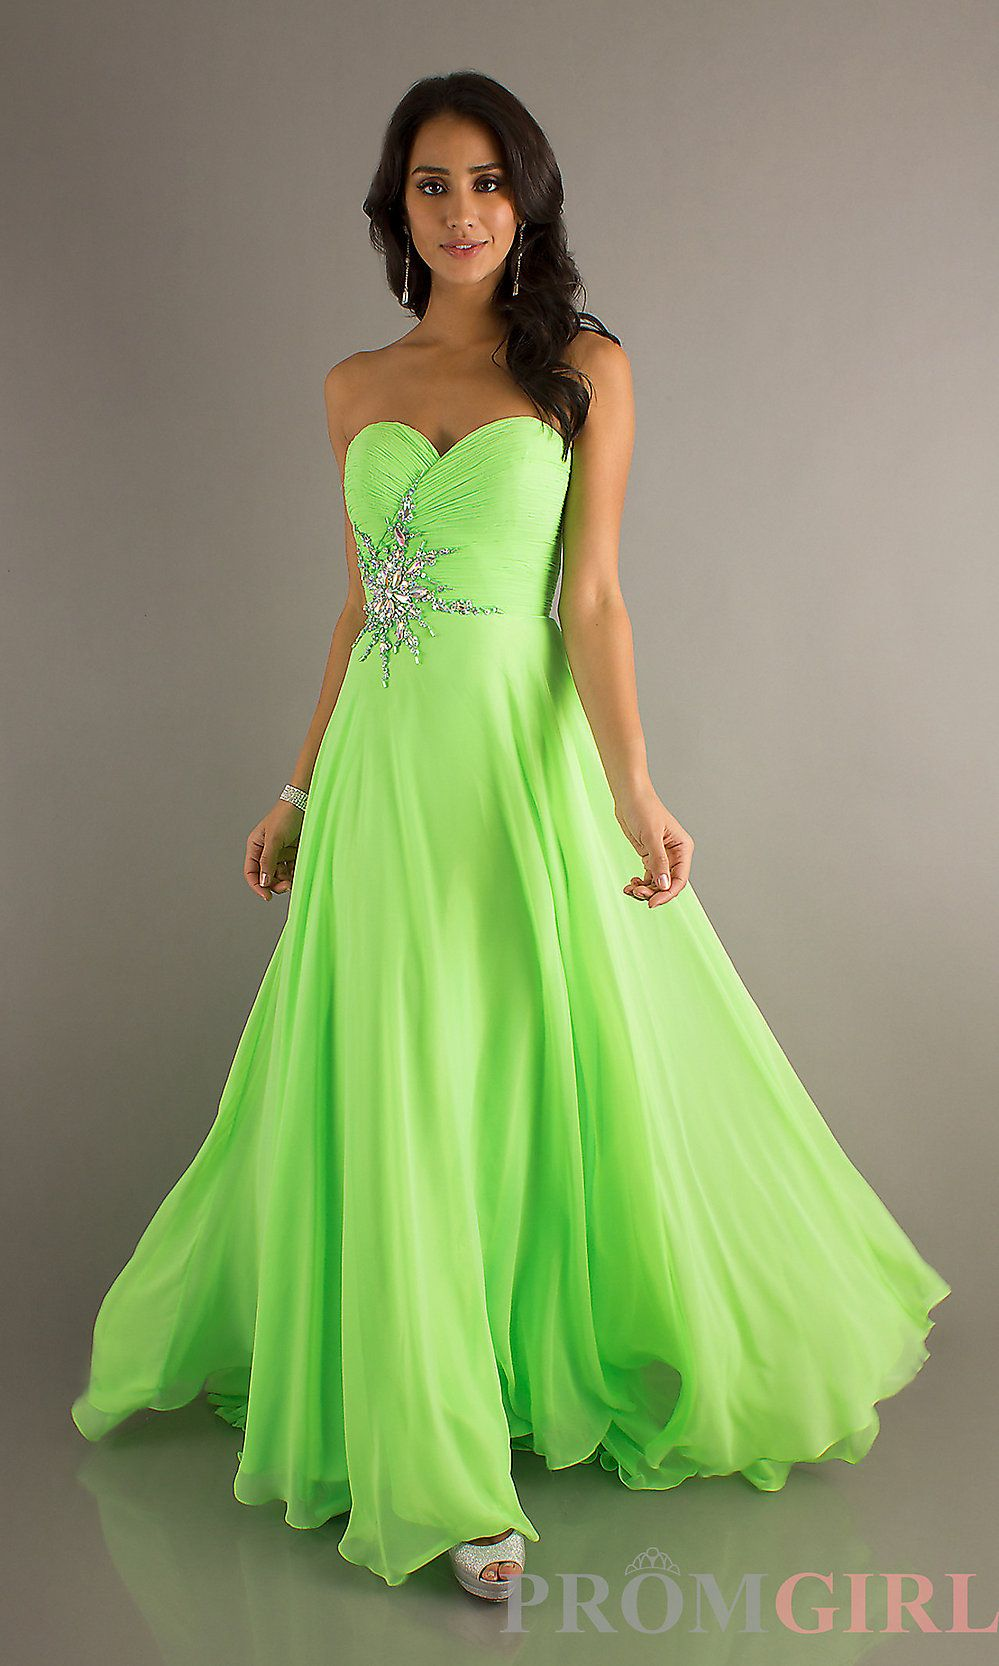 Absolutely Love Lime Green Prom Dresses Green Prom Dress Lime Green Bridesmaid Dresses [ 1666 x 999 Pixel ]